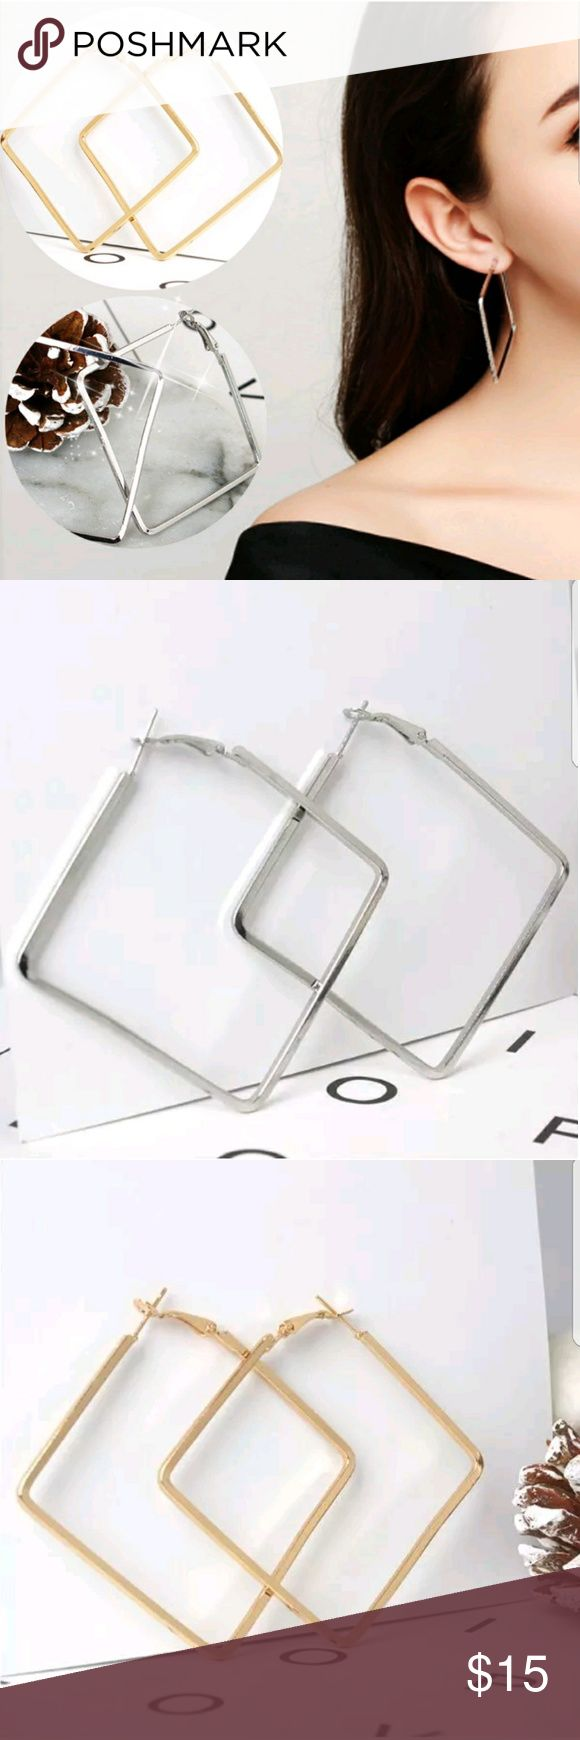 ANY 4 PAIRS FOR  $15! Square earrings! Square earrings & smaller heart earrings. Avail in Silver or Gold. They are priced great! Bundle & save on shipping! Choose Gold or Silver in Options. Once you add 4 pairs to your bundle, submit offer for $15 & it will be accepted! Gold stock# 152 Silver Stock # 252 Jewelry Earrings